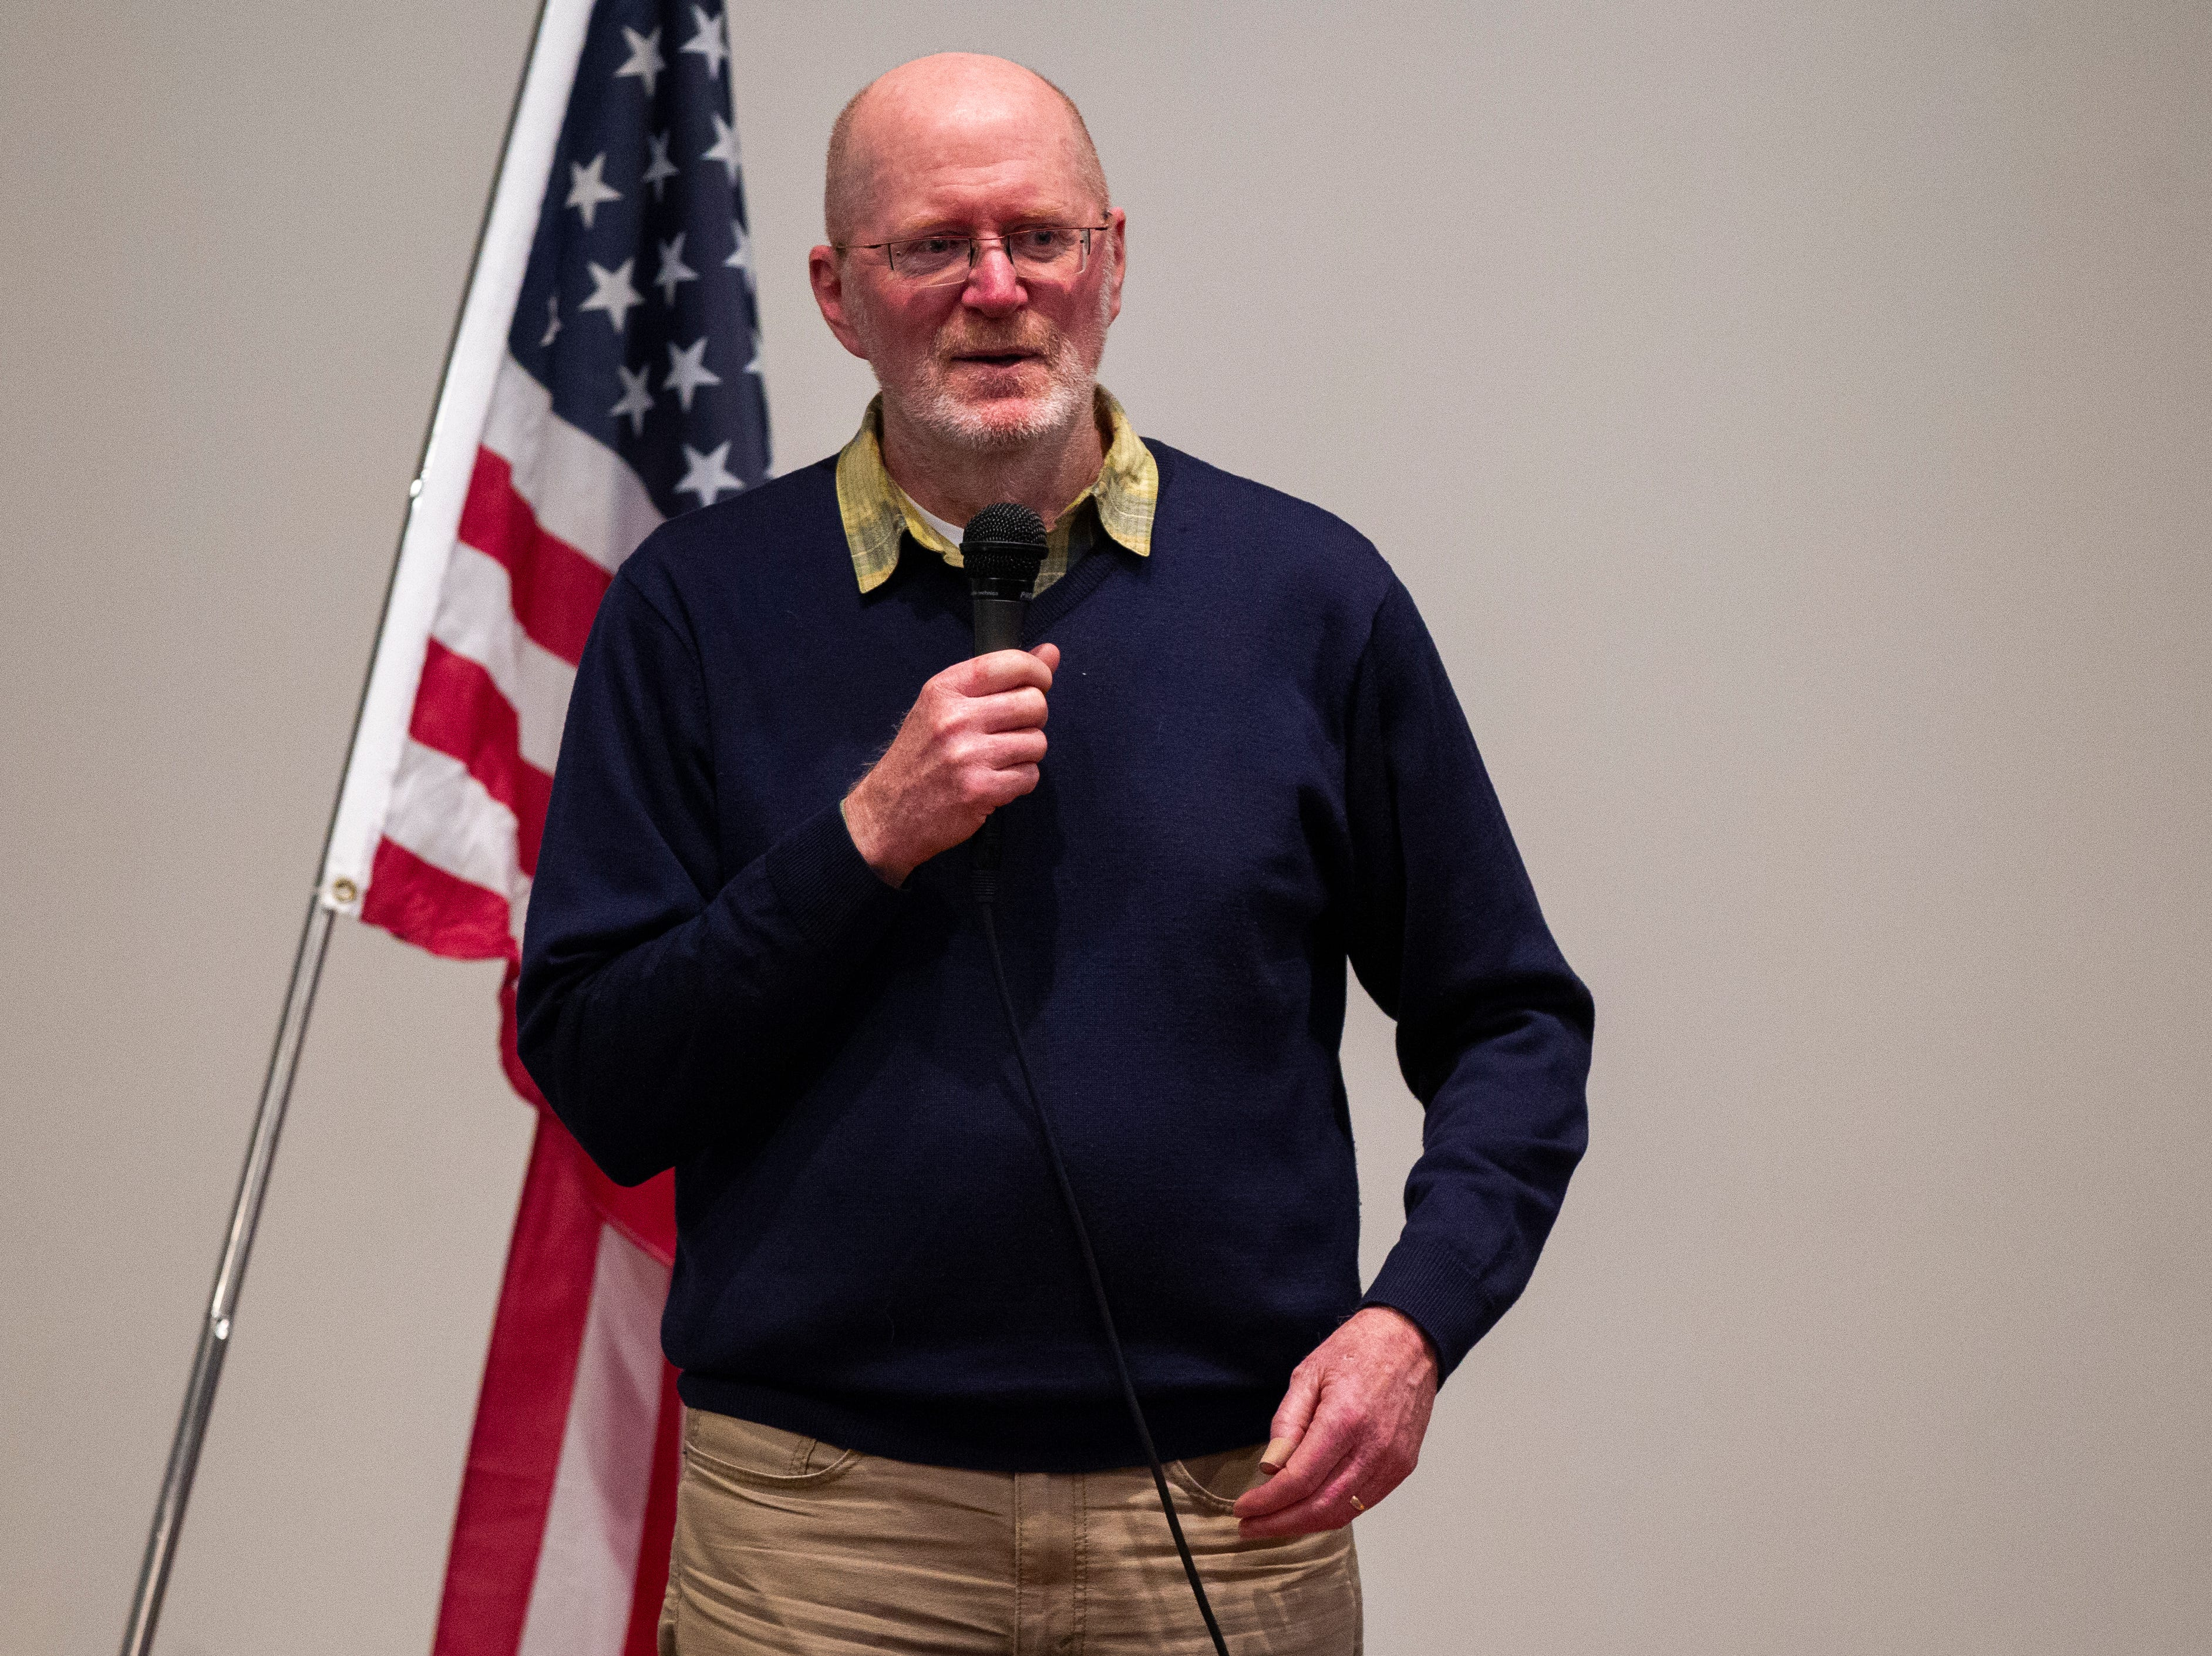 Iowa City Mayor Jim Throgmorton speaks before a swearing in ceremony for Iowa City councilor Bruce Teague on Saturday, Oct. 13, 2018, at the Church of Nazarene on Wade Street in Iowa City.